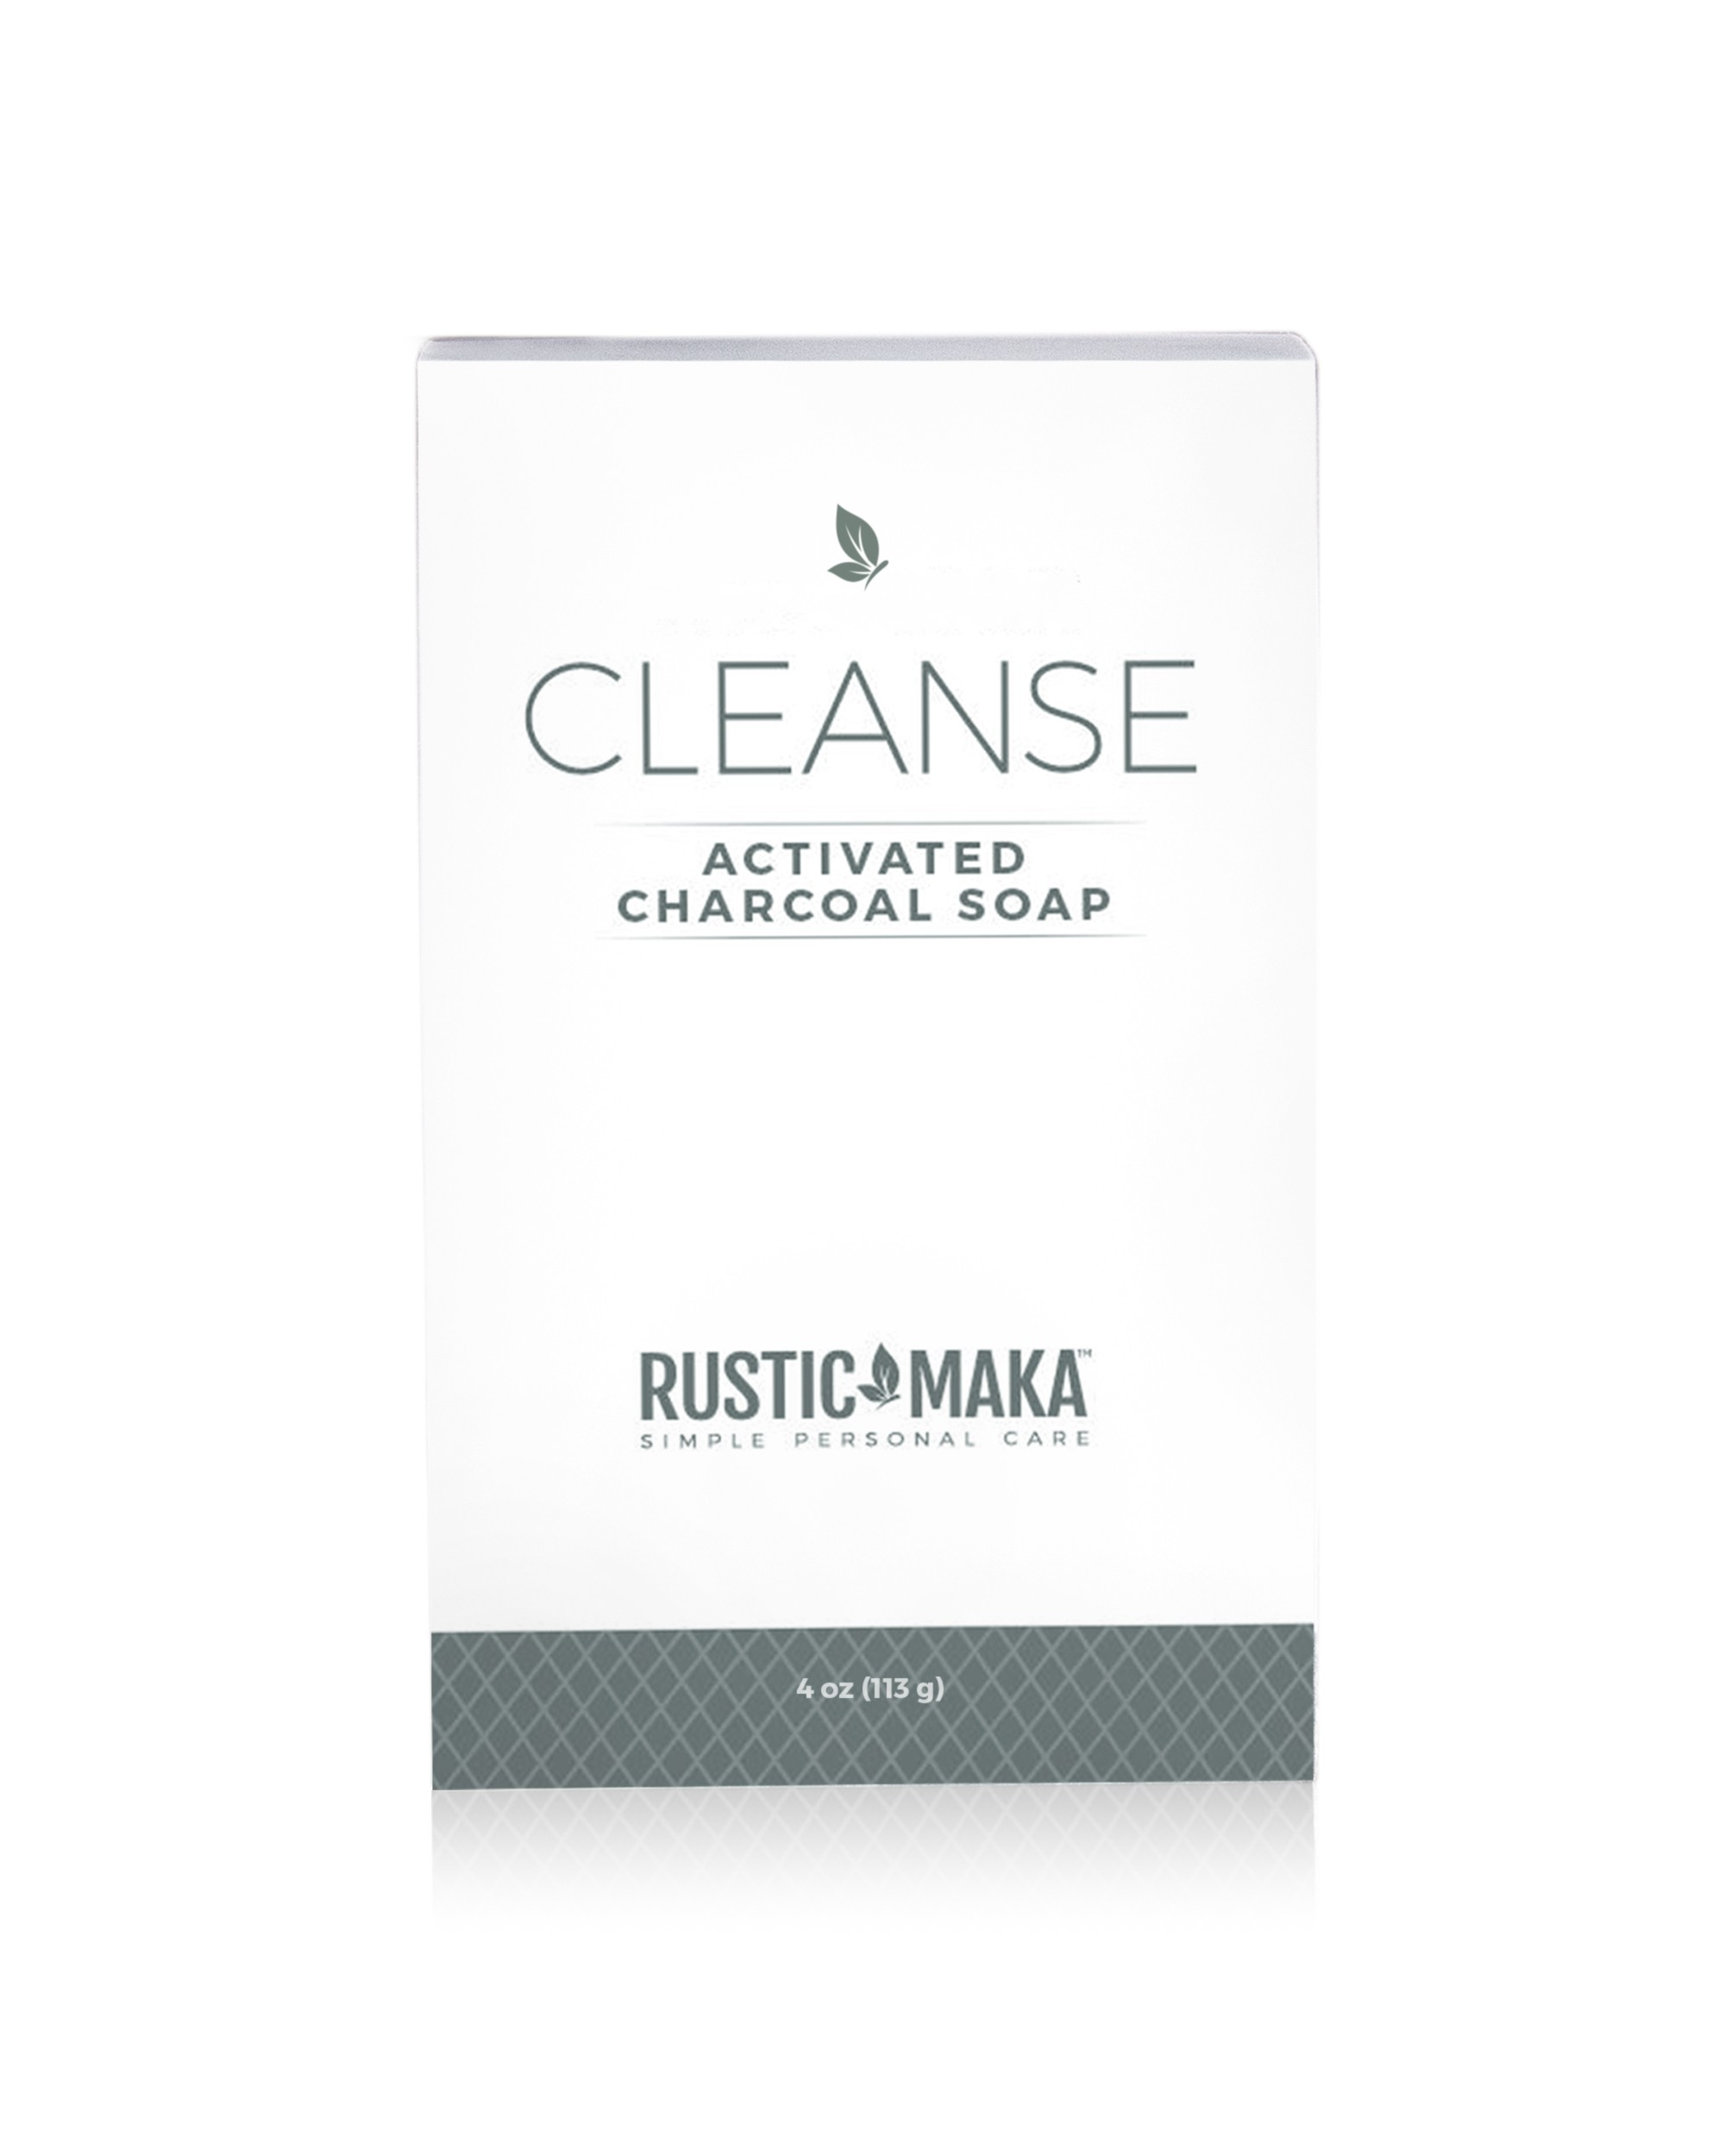 Rustic MAKA CLEANSE - Activated Charcoal Soap